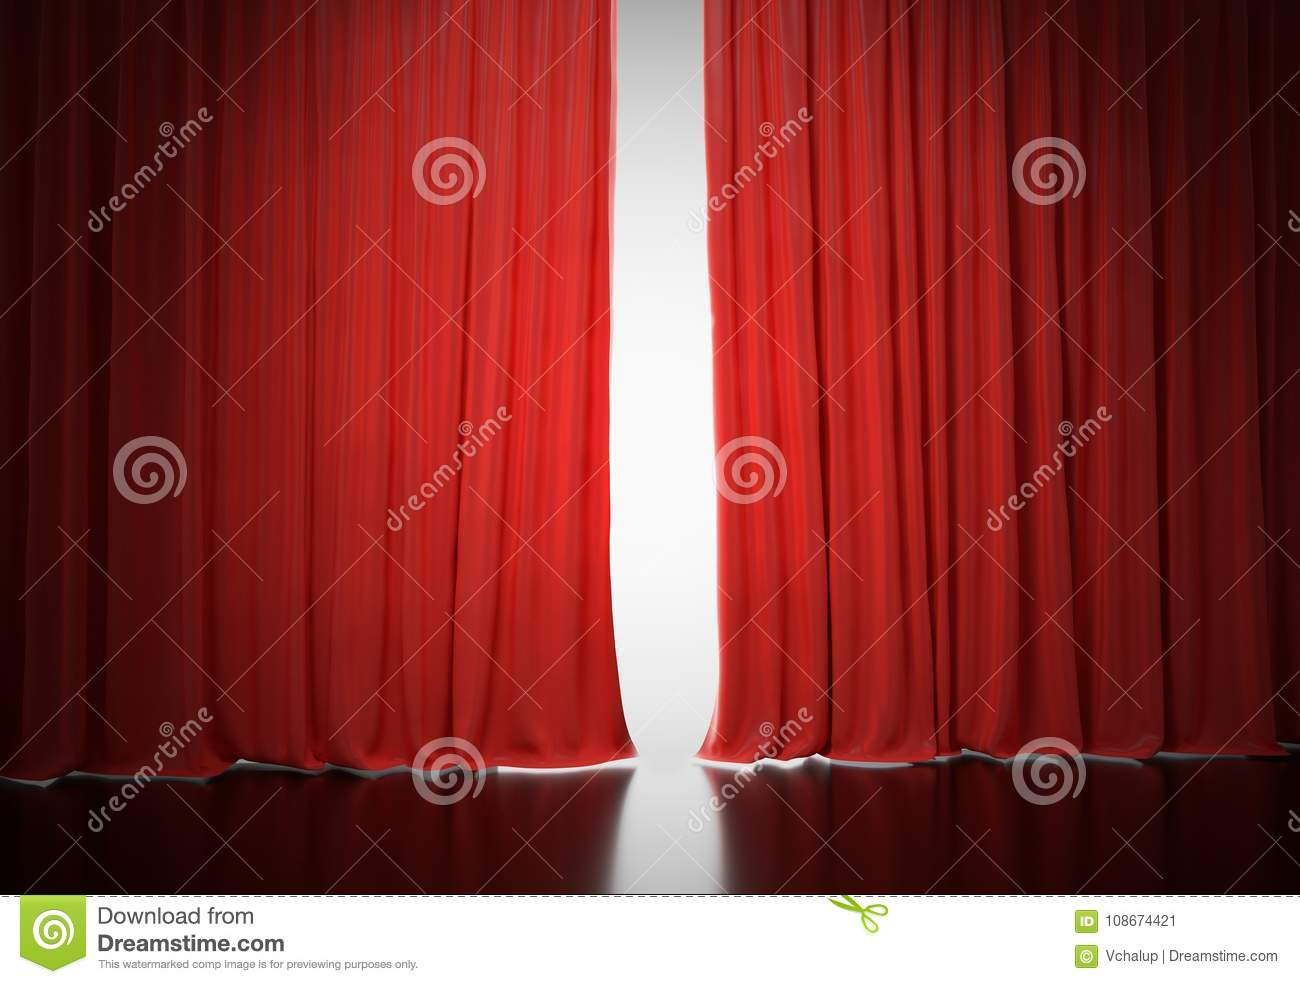 Download Bright Light Shining Behind Red Curtains In Theatre 3D Rendered Illustration Stock